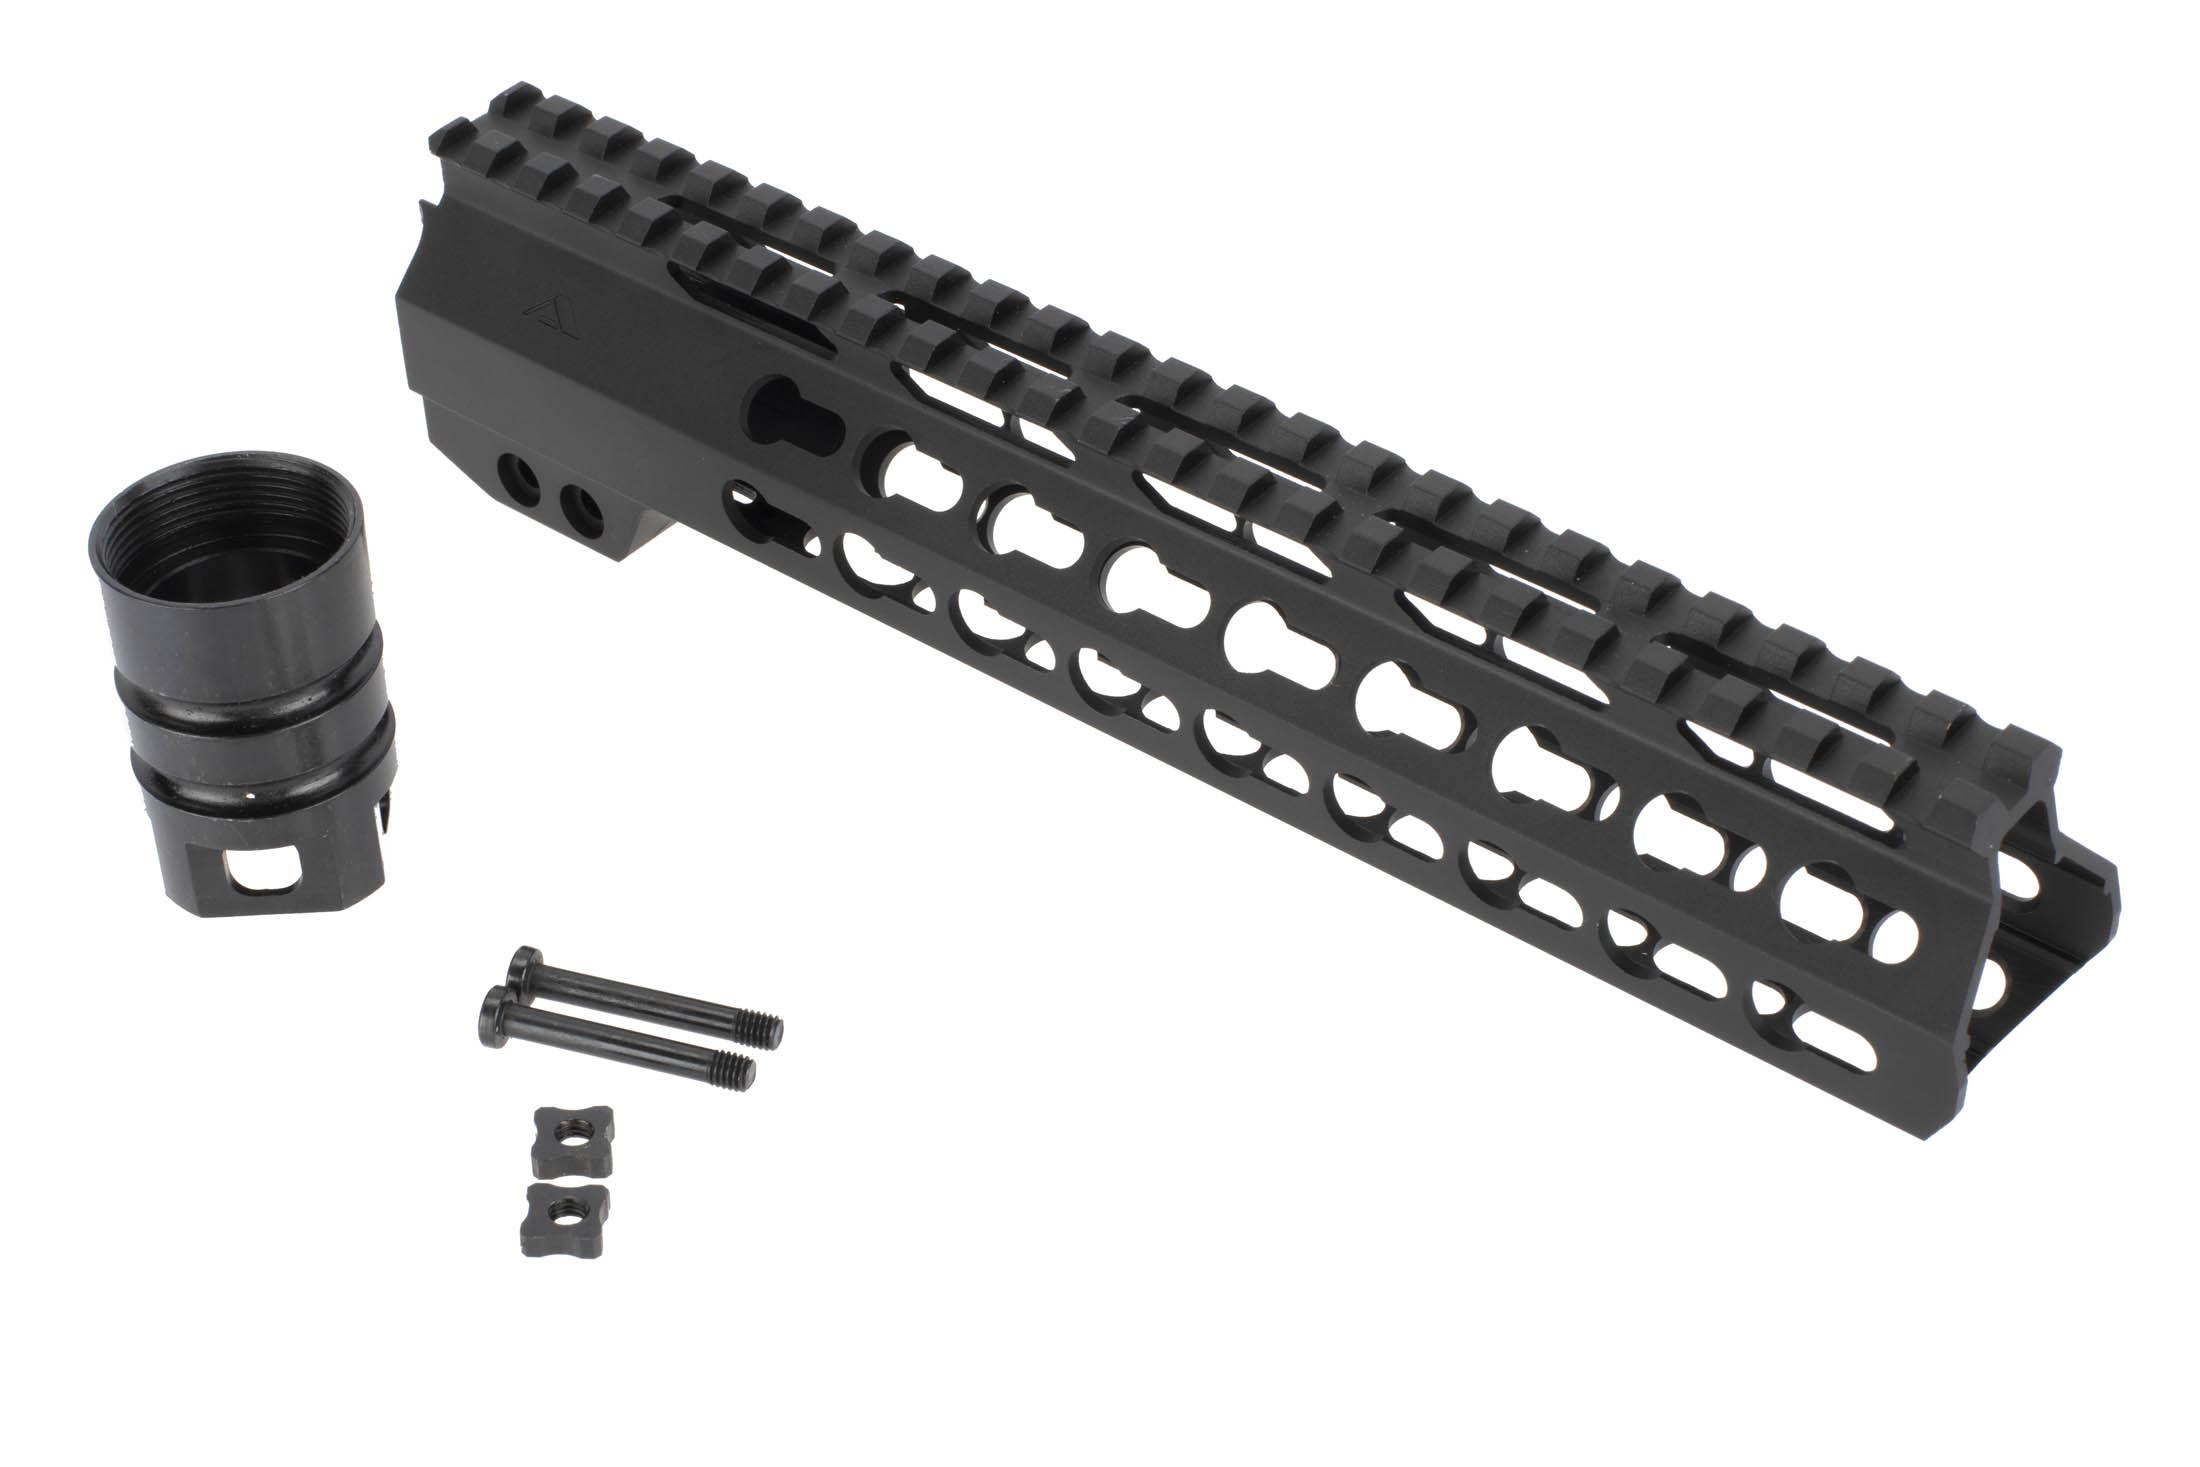 Aim Sports 10in Gen II KeyMod AR-15 free float handguard includes mounting hardware and barrel nut